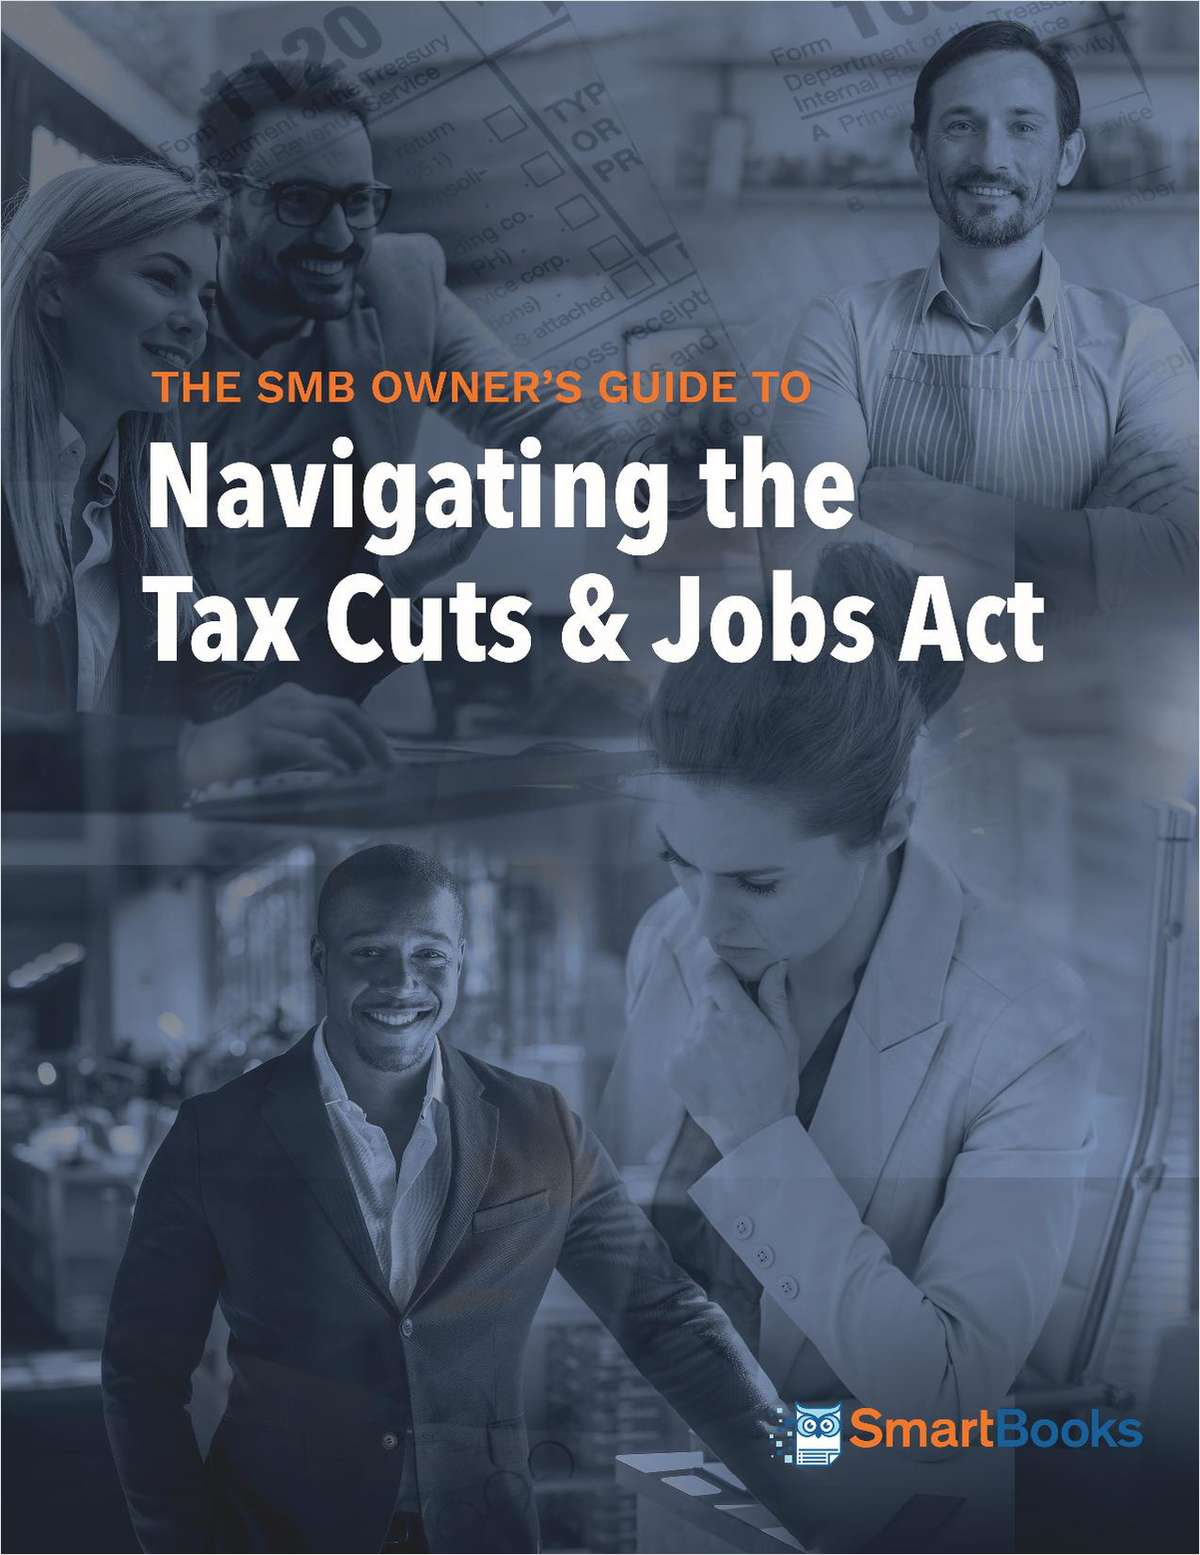 The SMB Owner's Guide to Navigating the Tax Cuts & Jobs Act